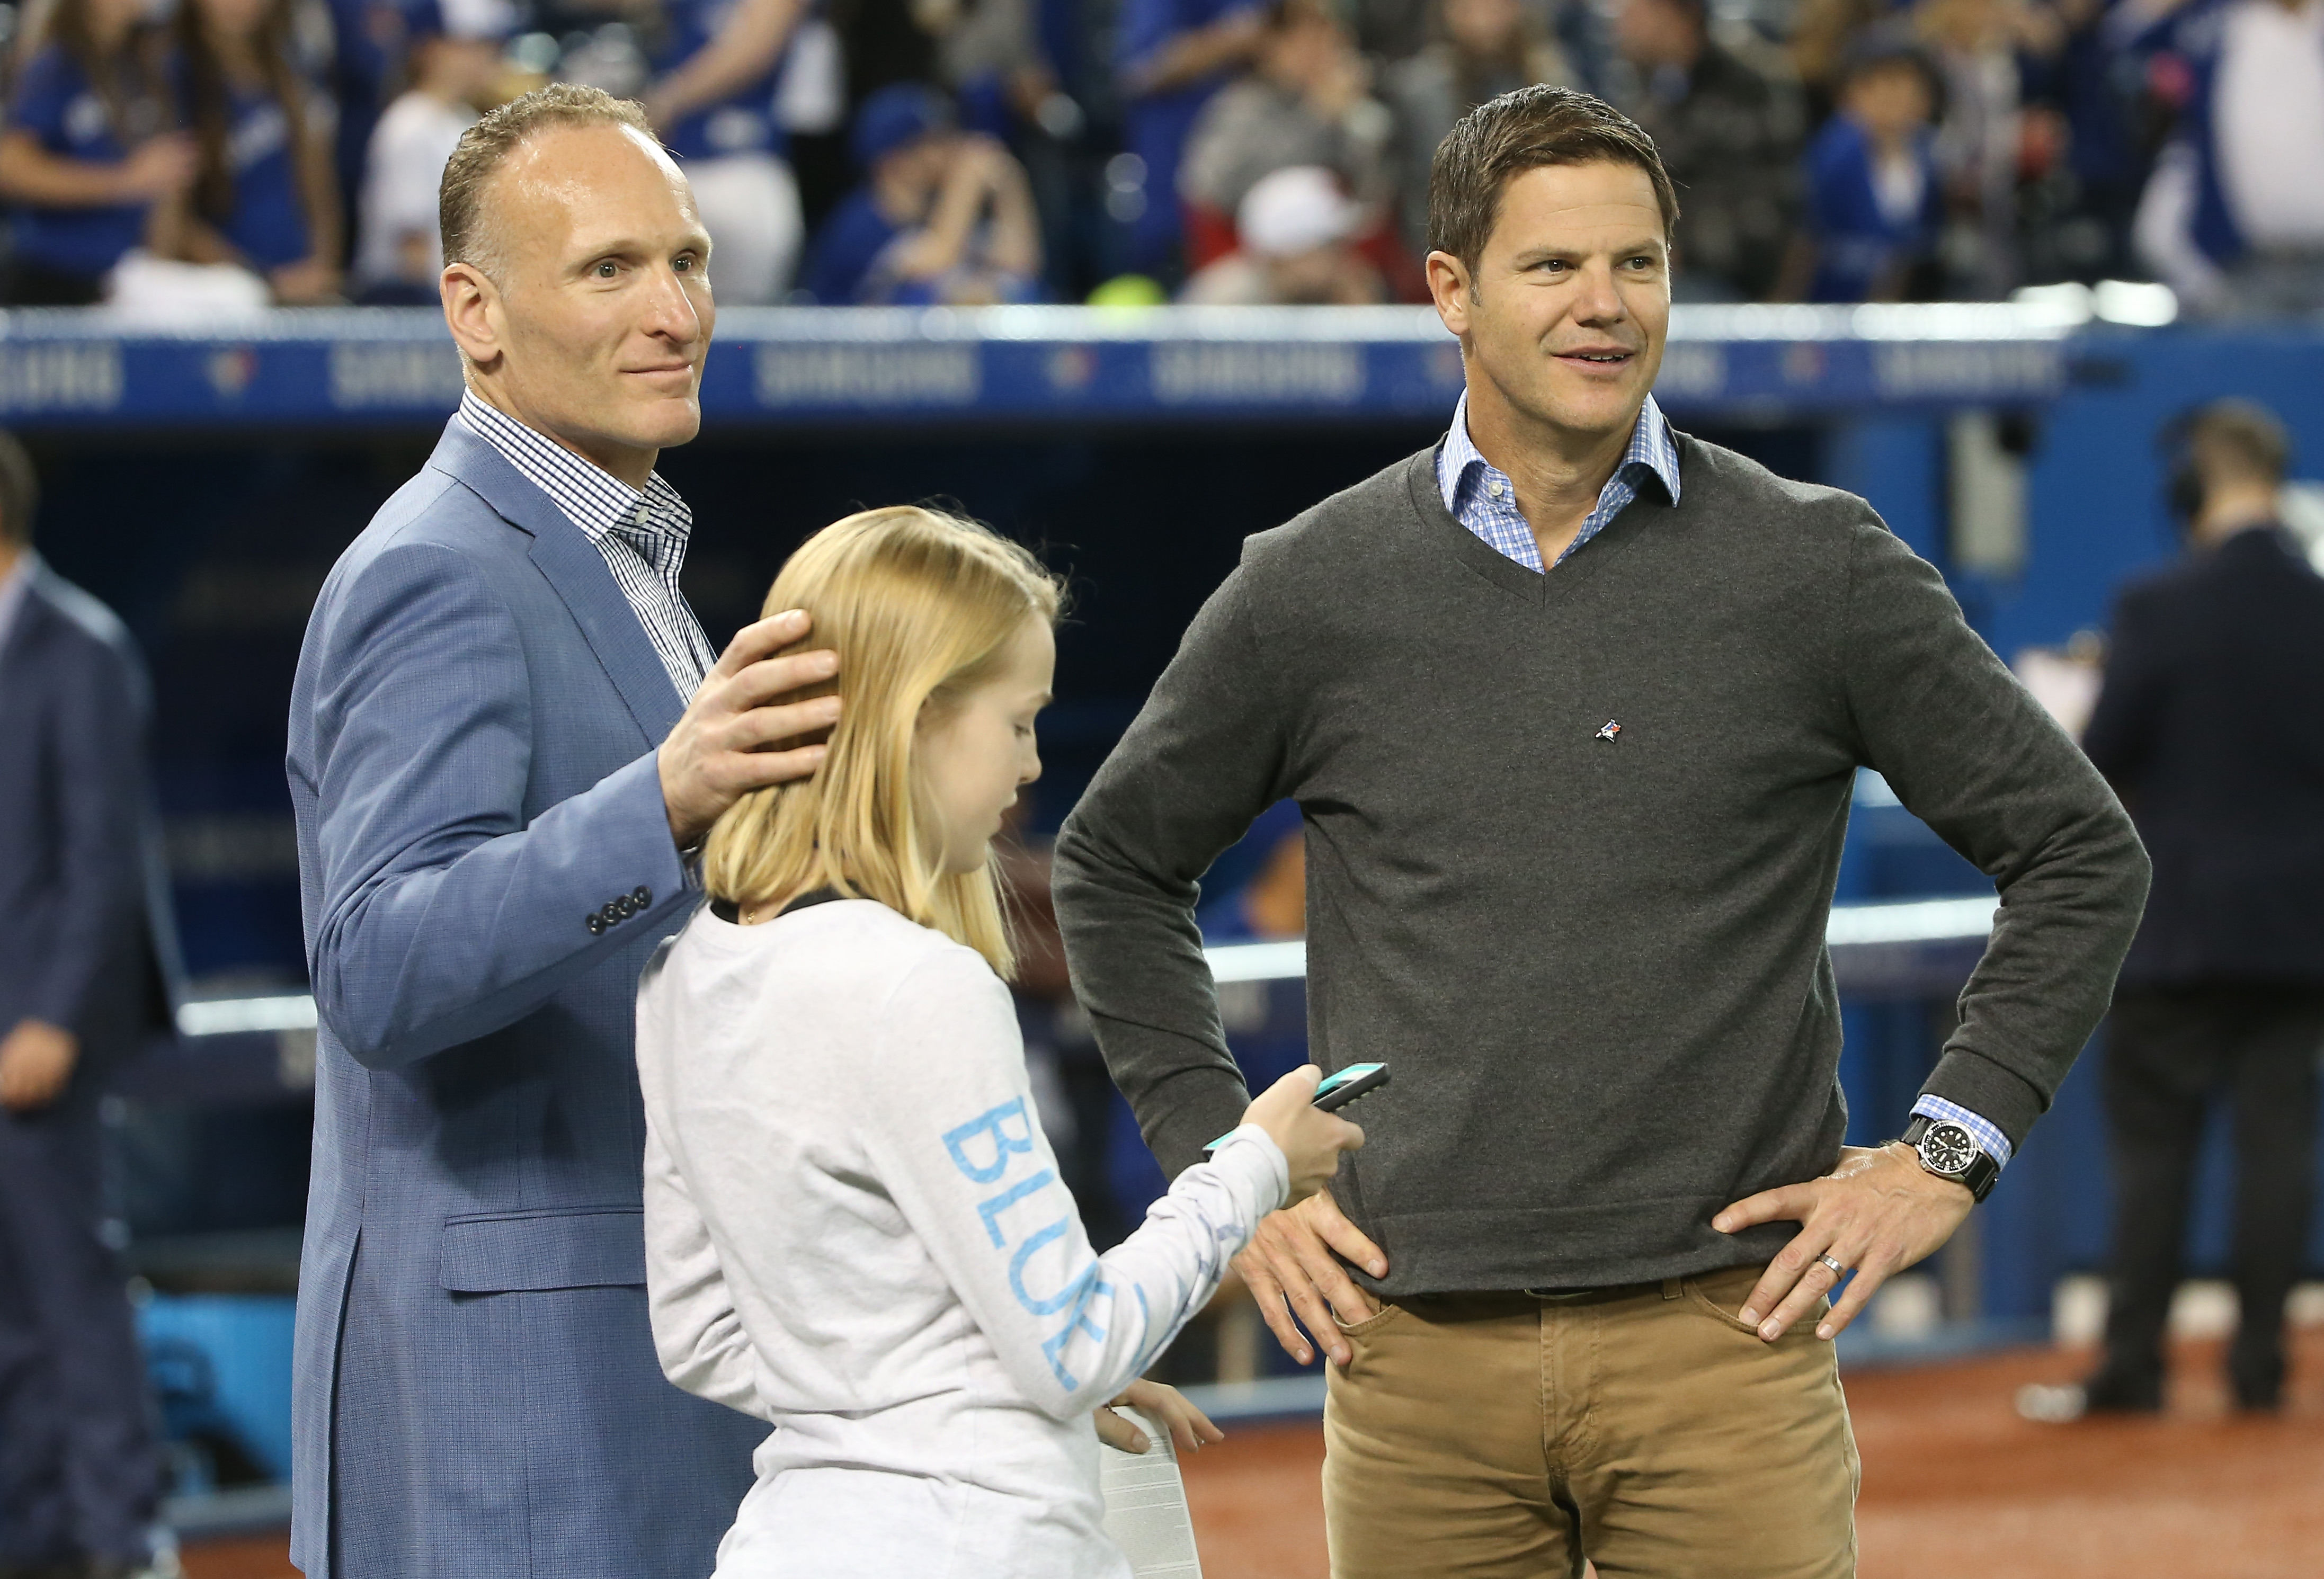 President and CEO Mark Shapiro of the Toronto Blue Jays with his daughter Sierra and General Manager Ross Atkins visit the field before the start of Friday's game.